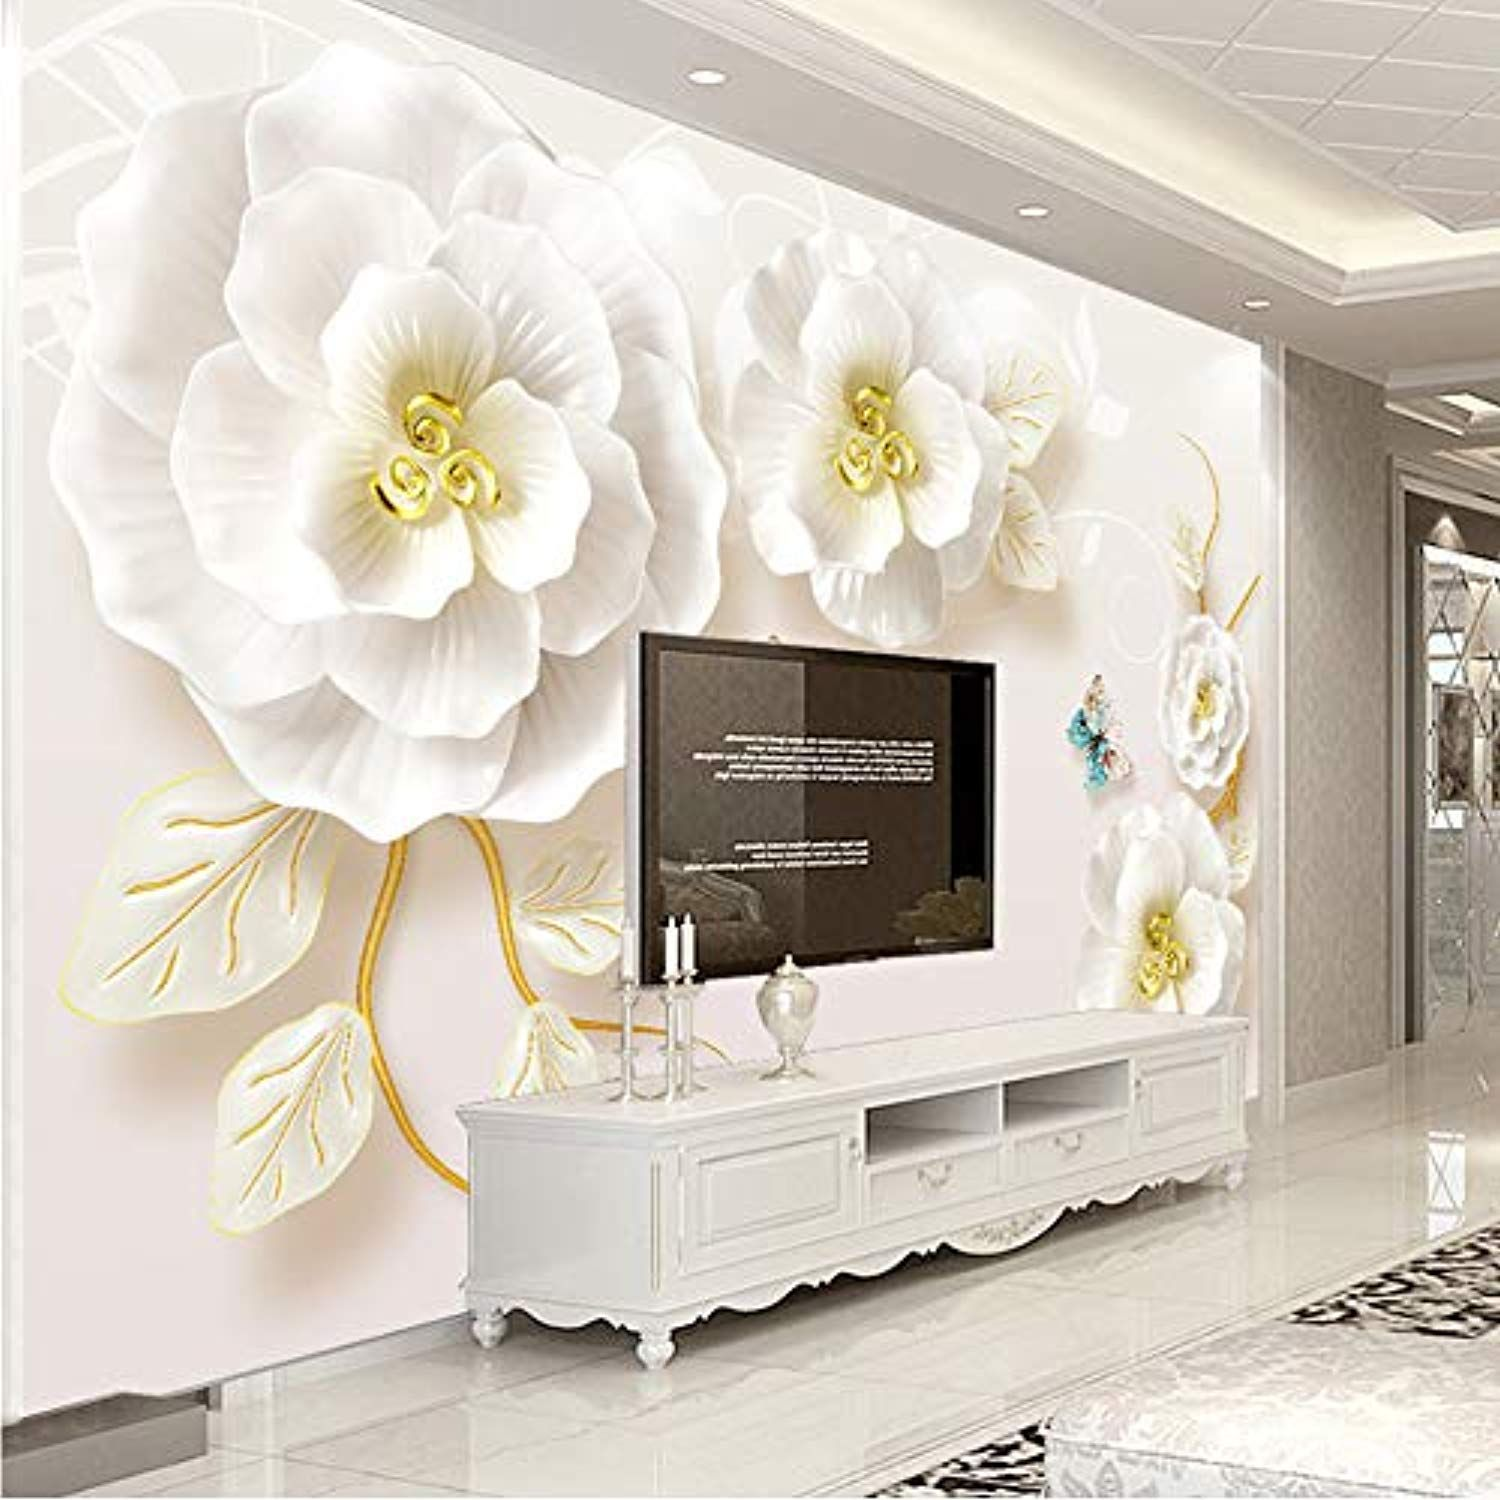 Meaosy Custom Photo Wallpaper Murals 3d Embossed Rose Living Room Tv Background Wall Painting Non Wallpaper Living Room Wall Decor Living Room Living Room Wall